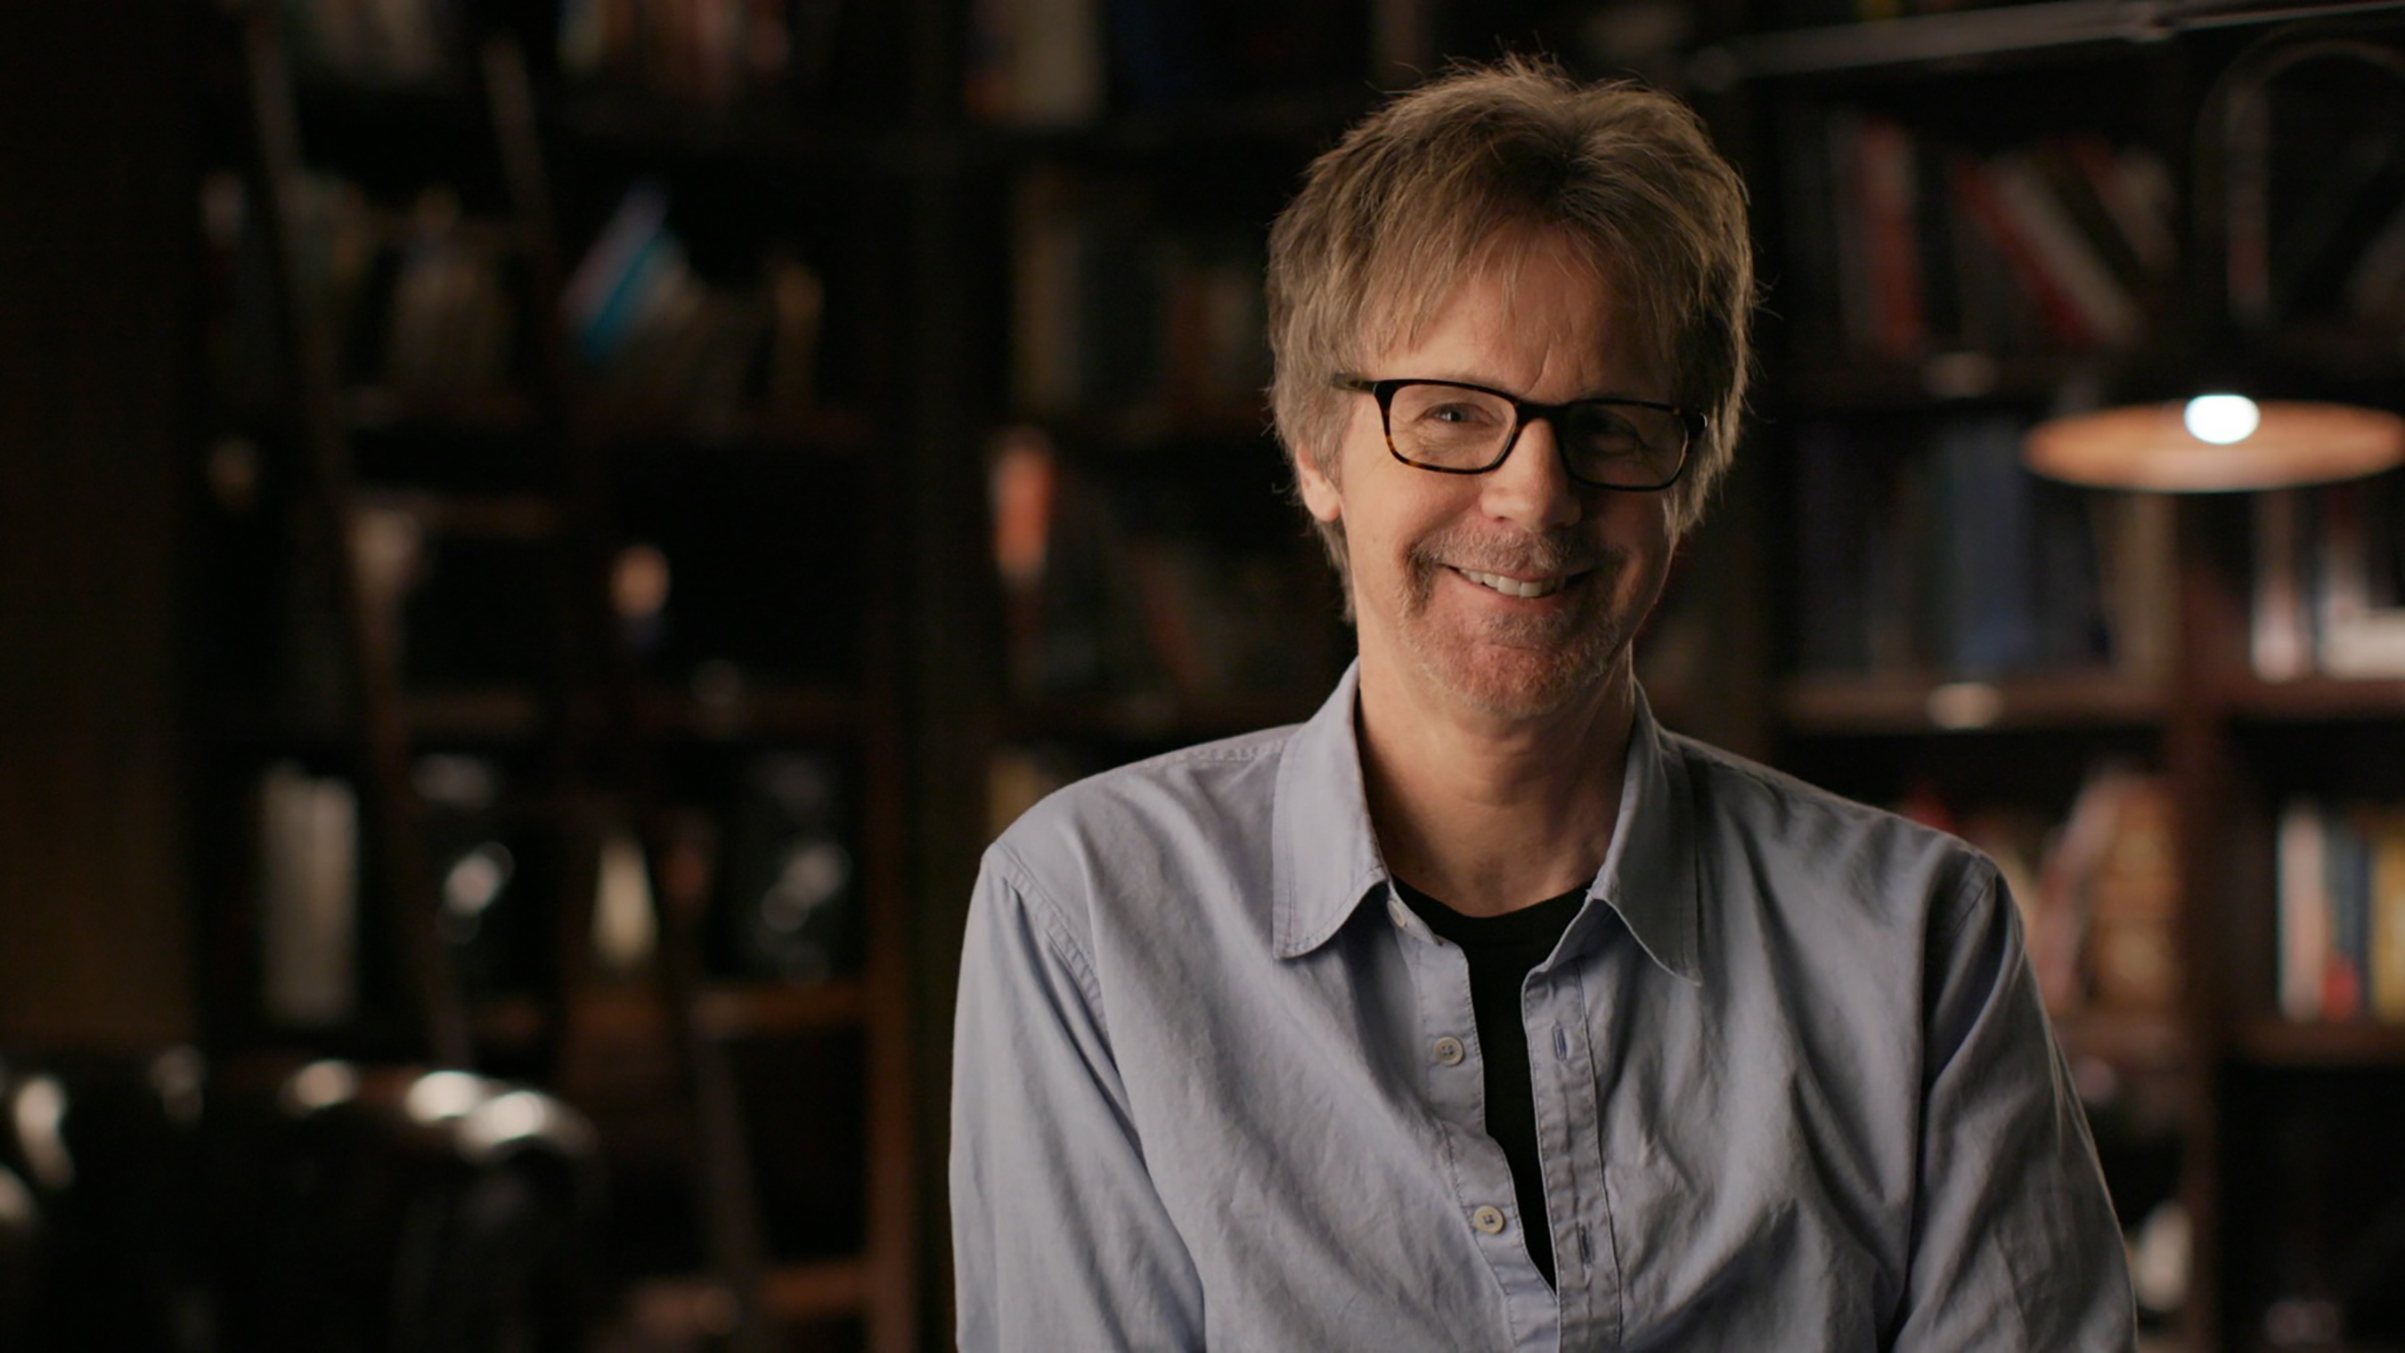 Dana Carvey in Too Funny to Fail, the true story of a crew of genius misfits who set out to make comedy history... and succeeded in a way they never intended.